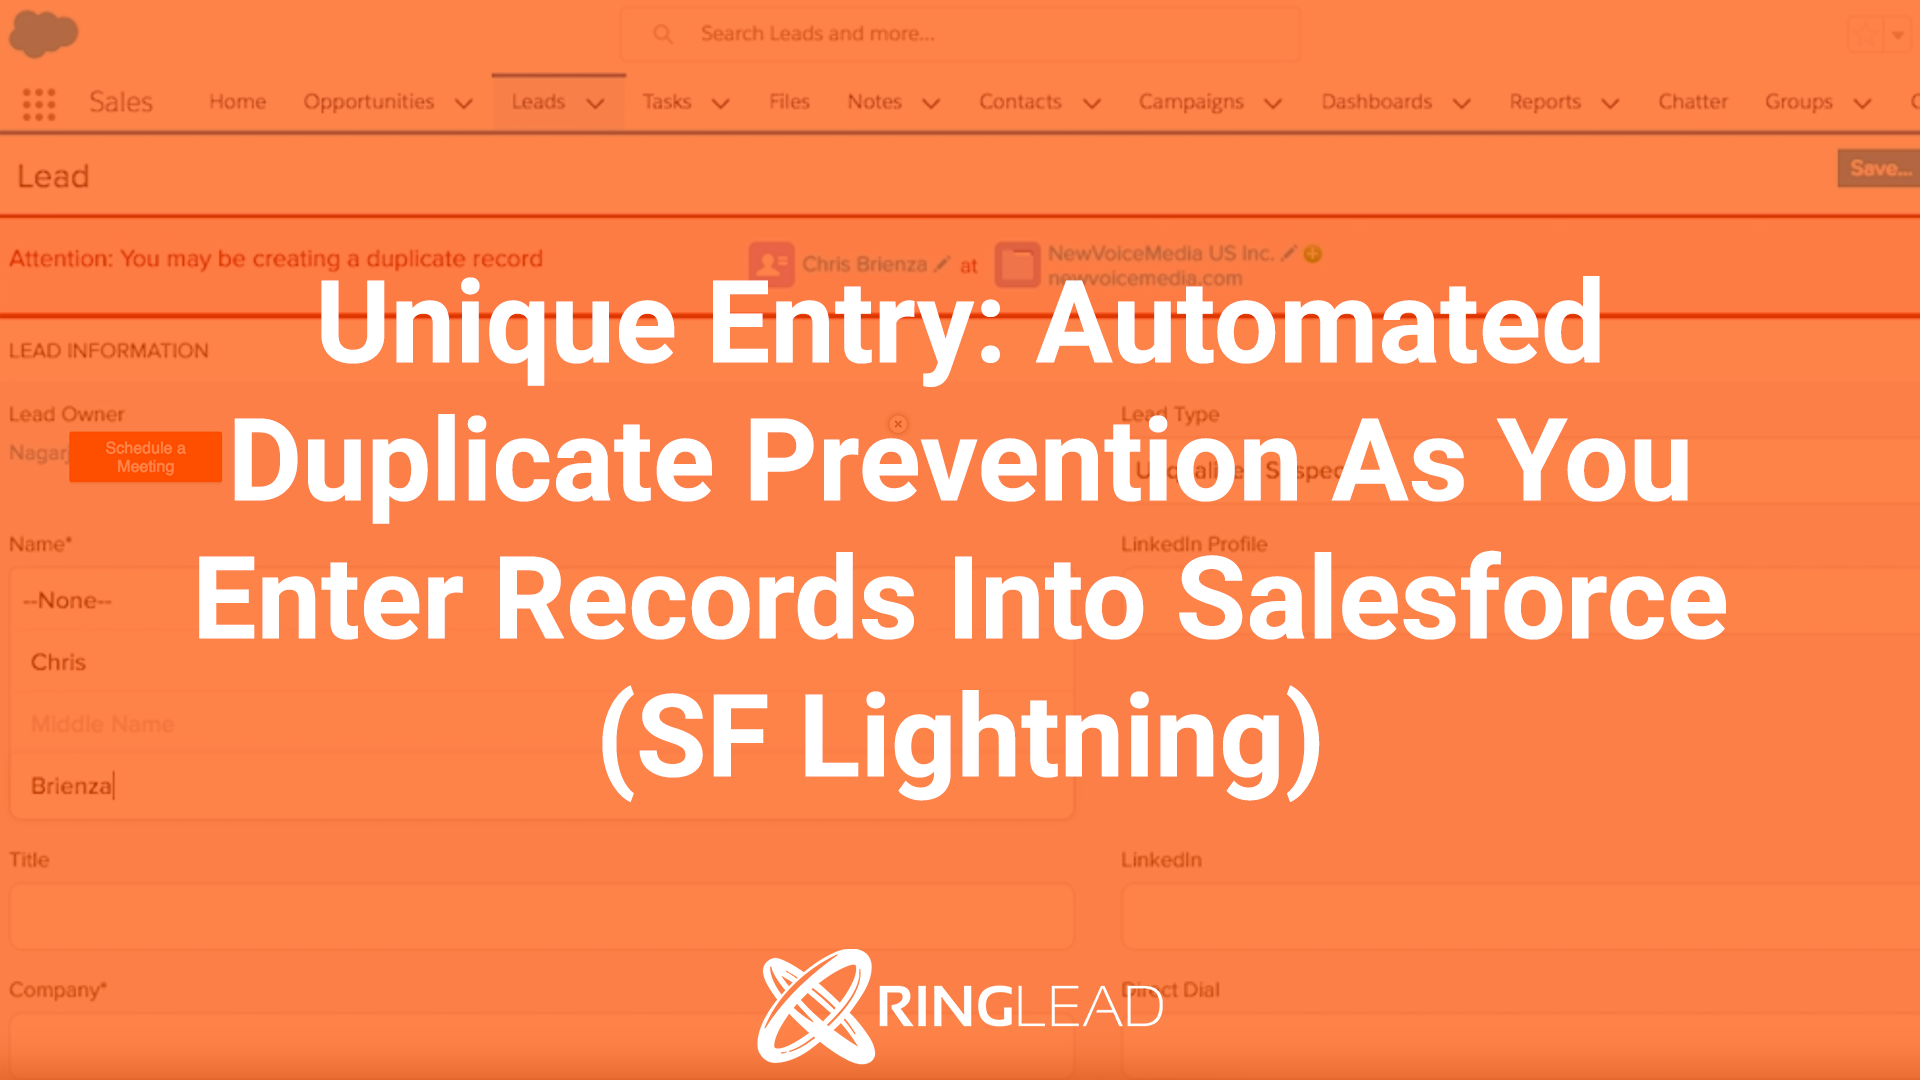 Unique Entry: Automated Duplicate Prevention As You Enter Records Into Salesforce (SF Lightning)